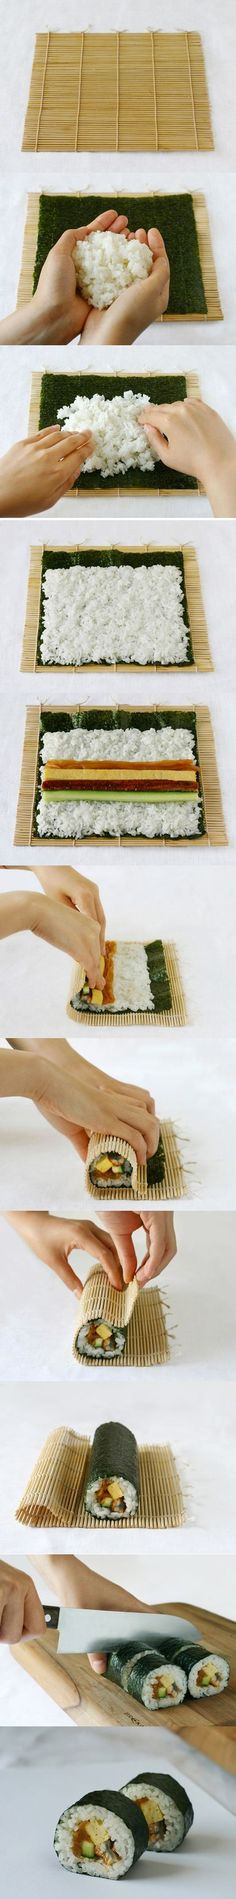 DIY - How to make sushi rolls ...would probably just use cucumber though